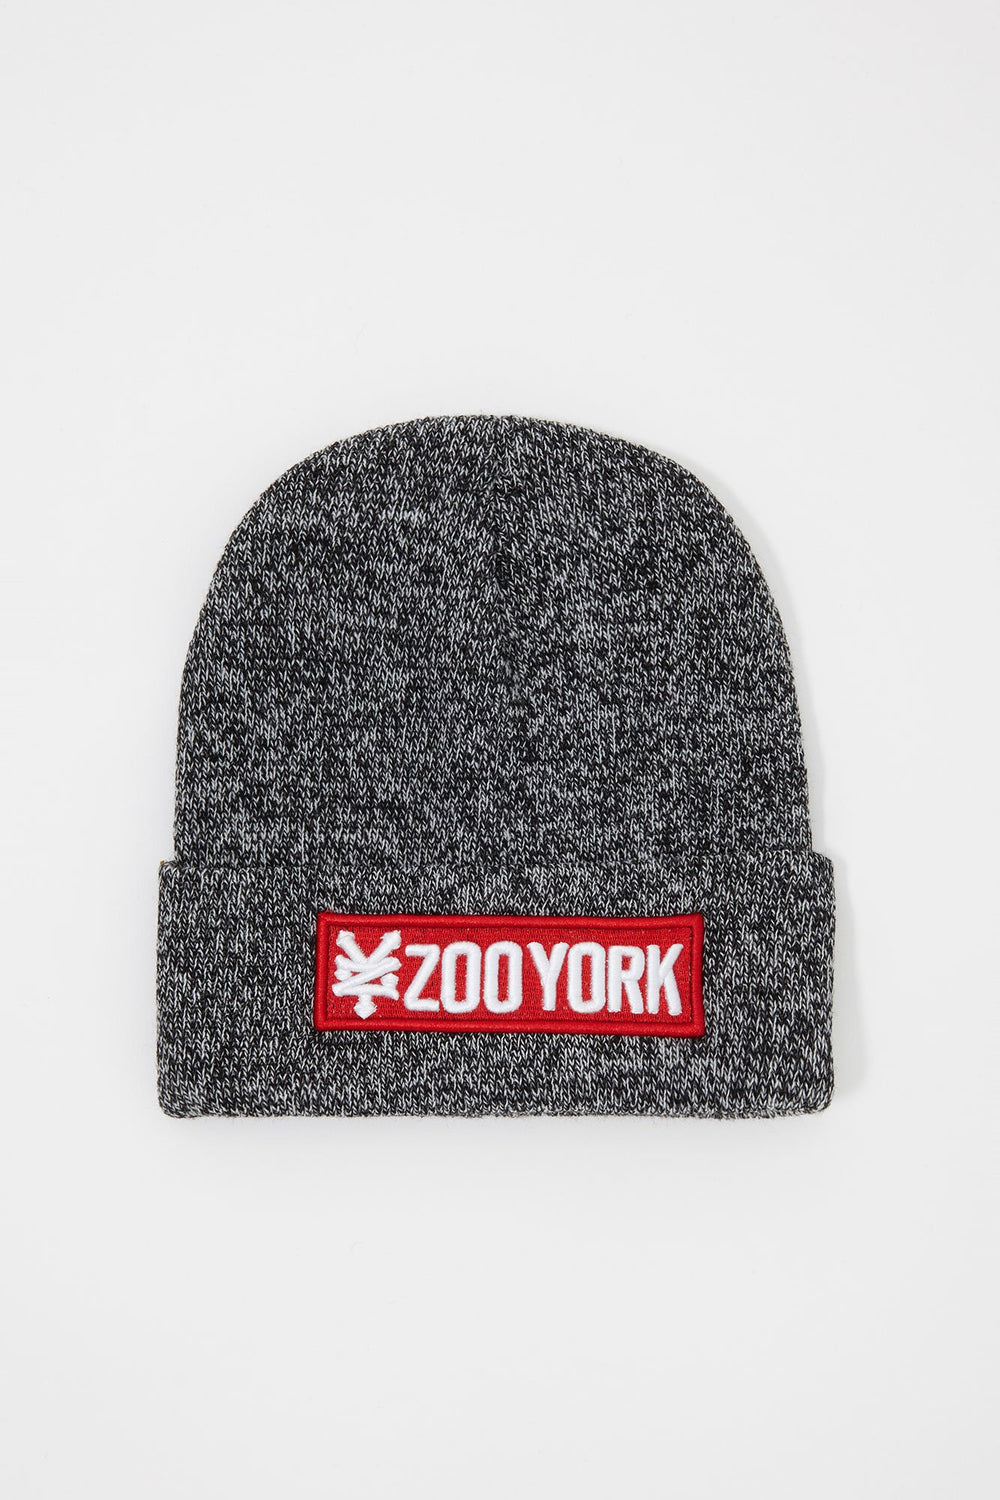 Zoo York Boys Red Box Patch Logo Beanie Black with White